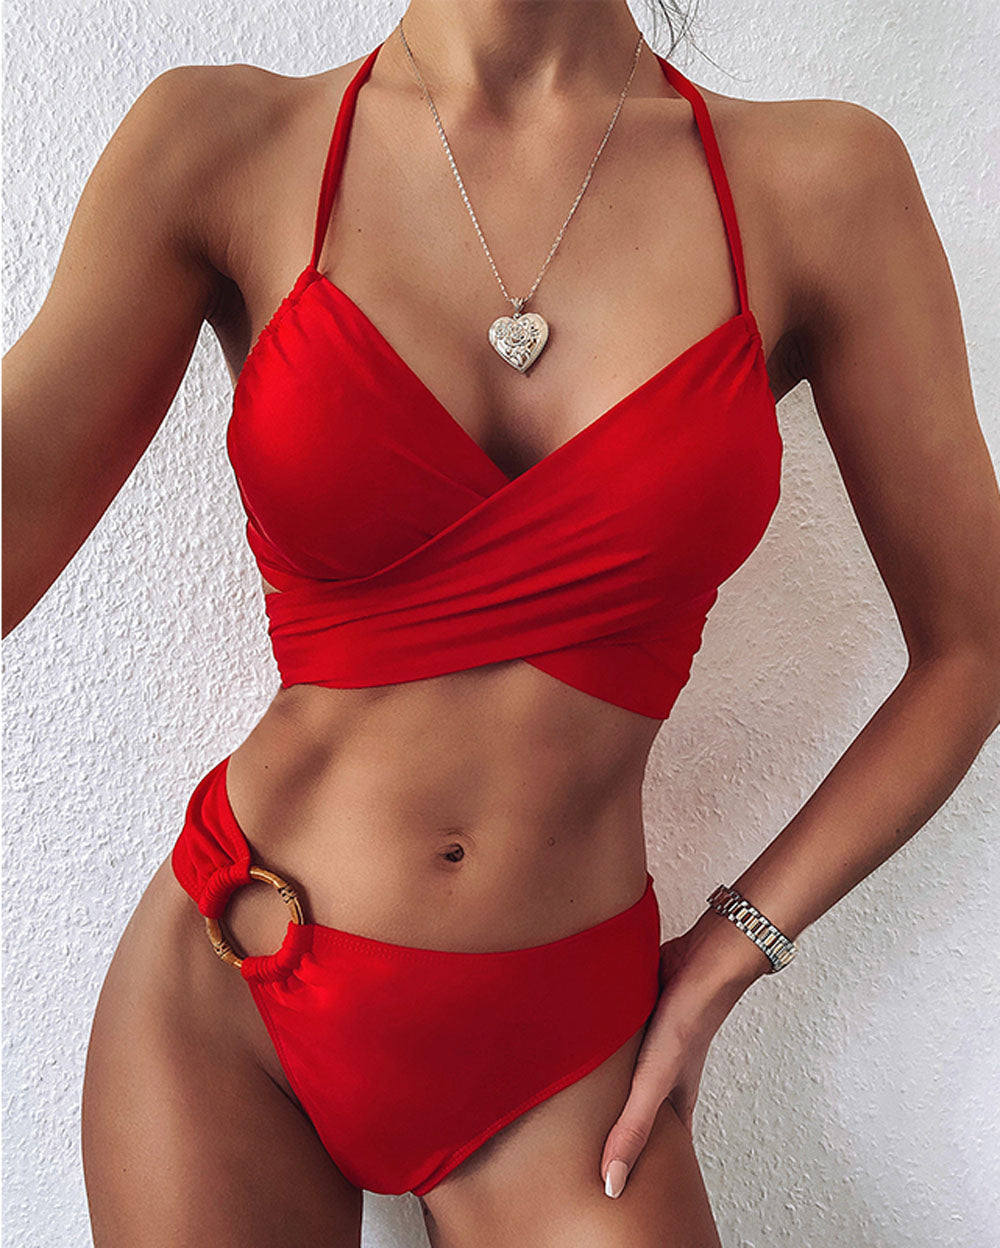 Peachwork Snake Print Bikini set High waist Swimwear Women Hollow out Swimsuit Female Brazilian Bikini Bathers bathing suit